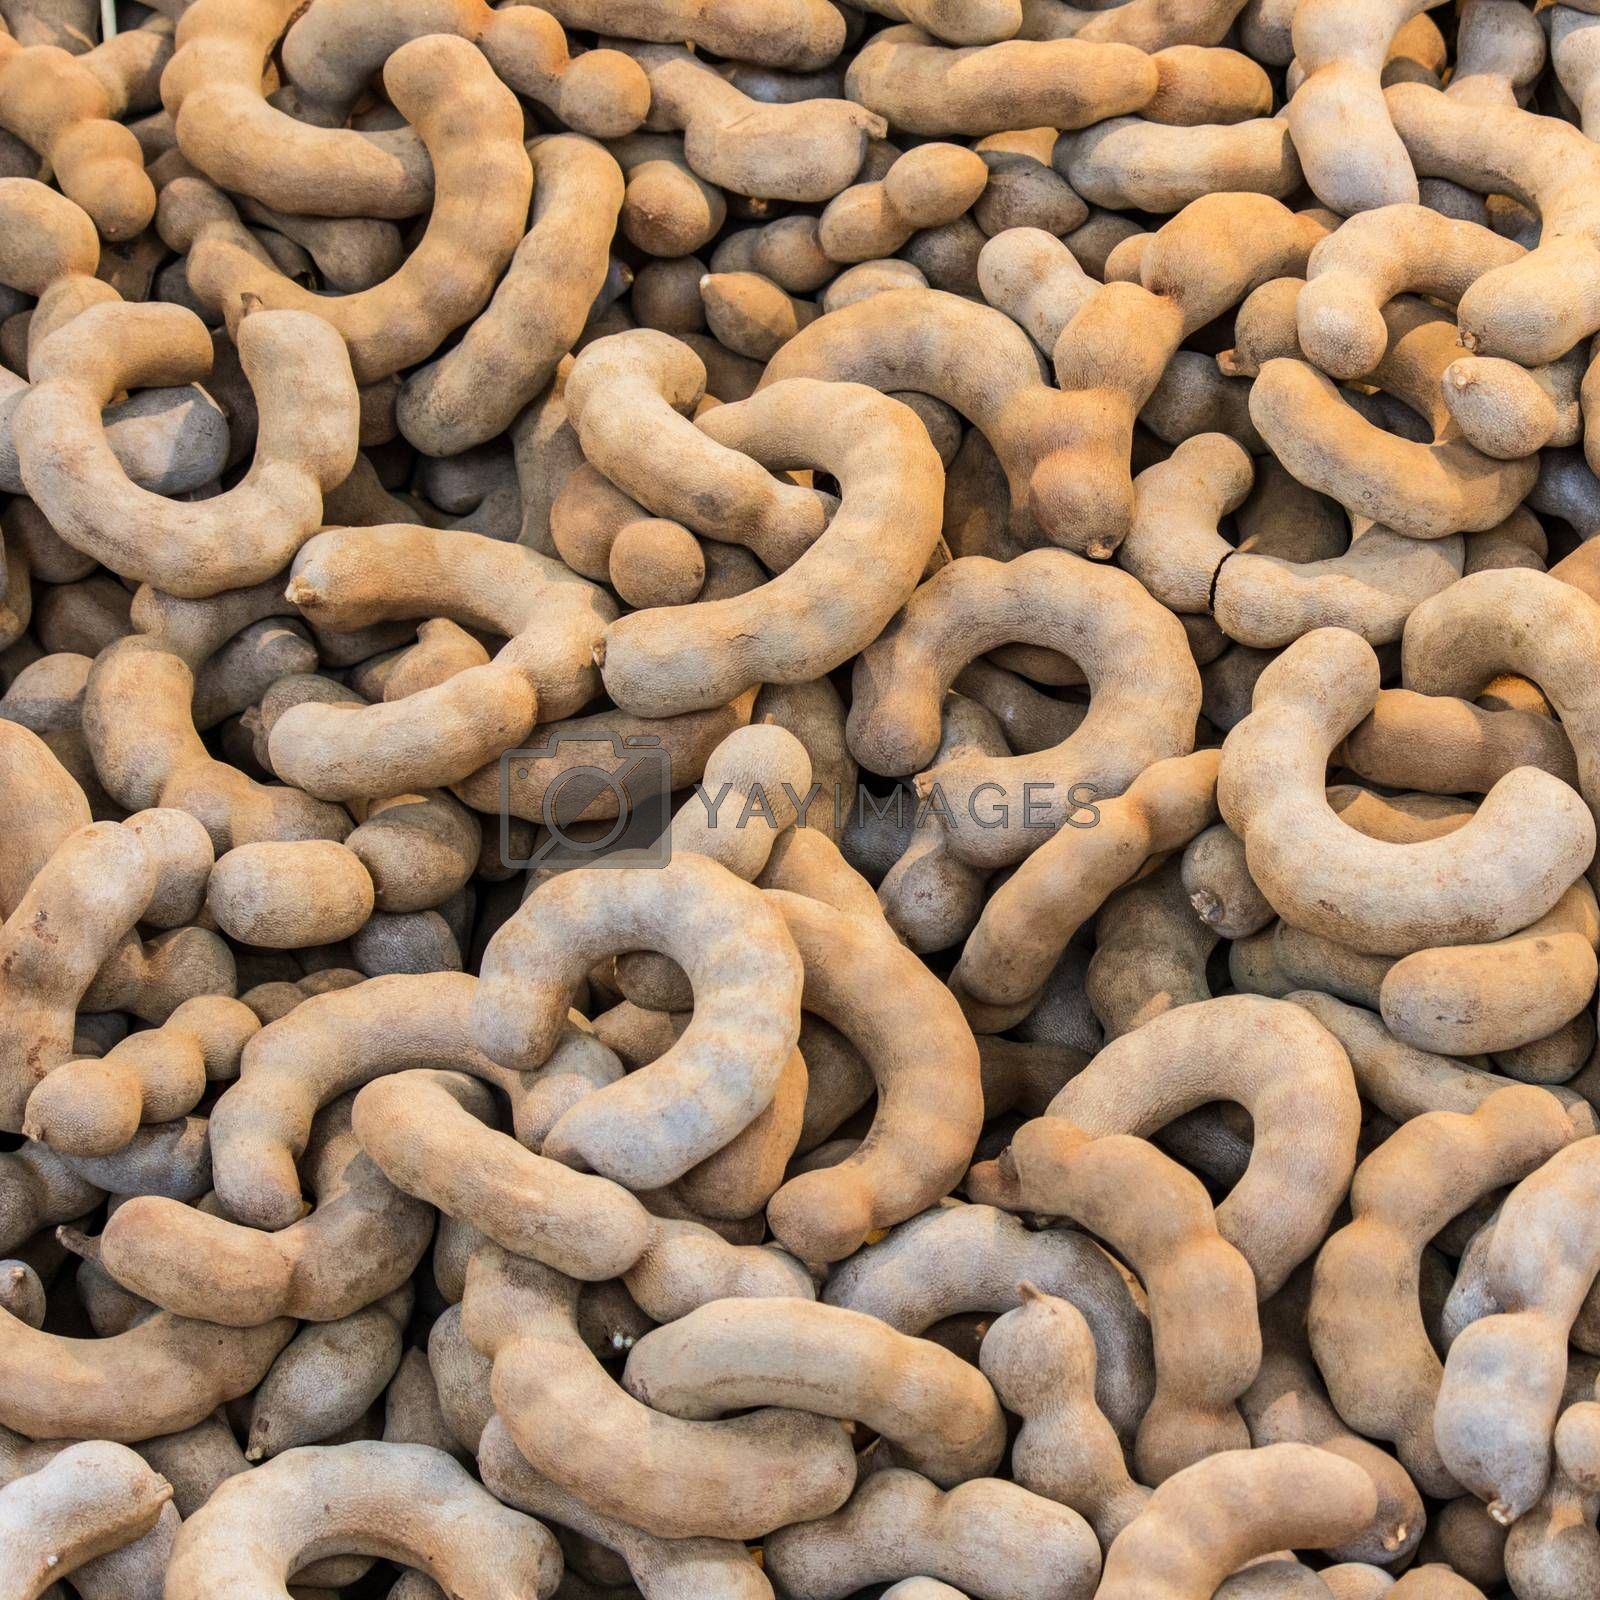 Tamarind taken as background. A sweet and sour fruit grown in Thailand. Nature's Laxative.